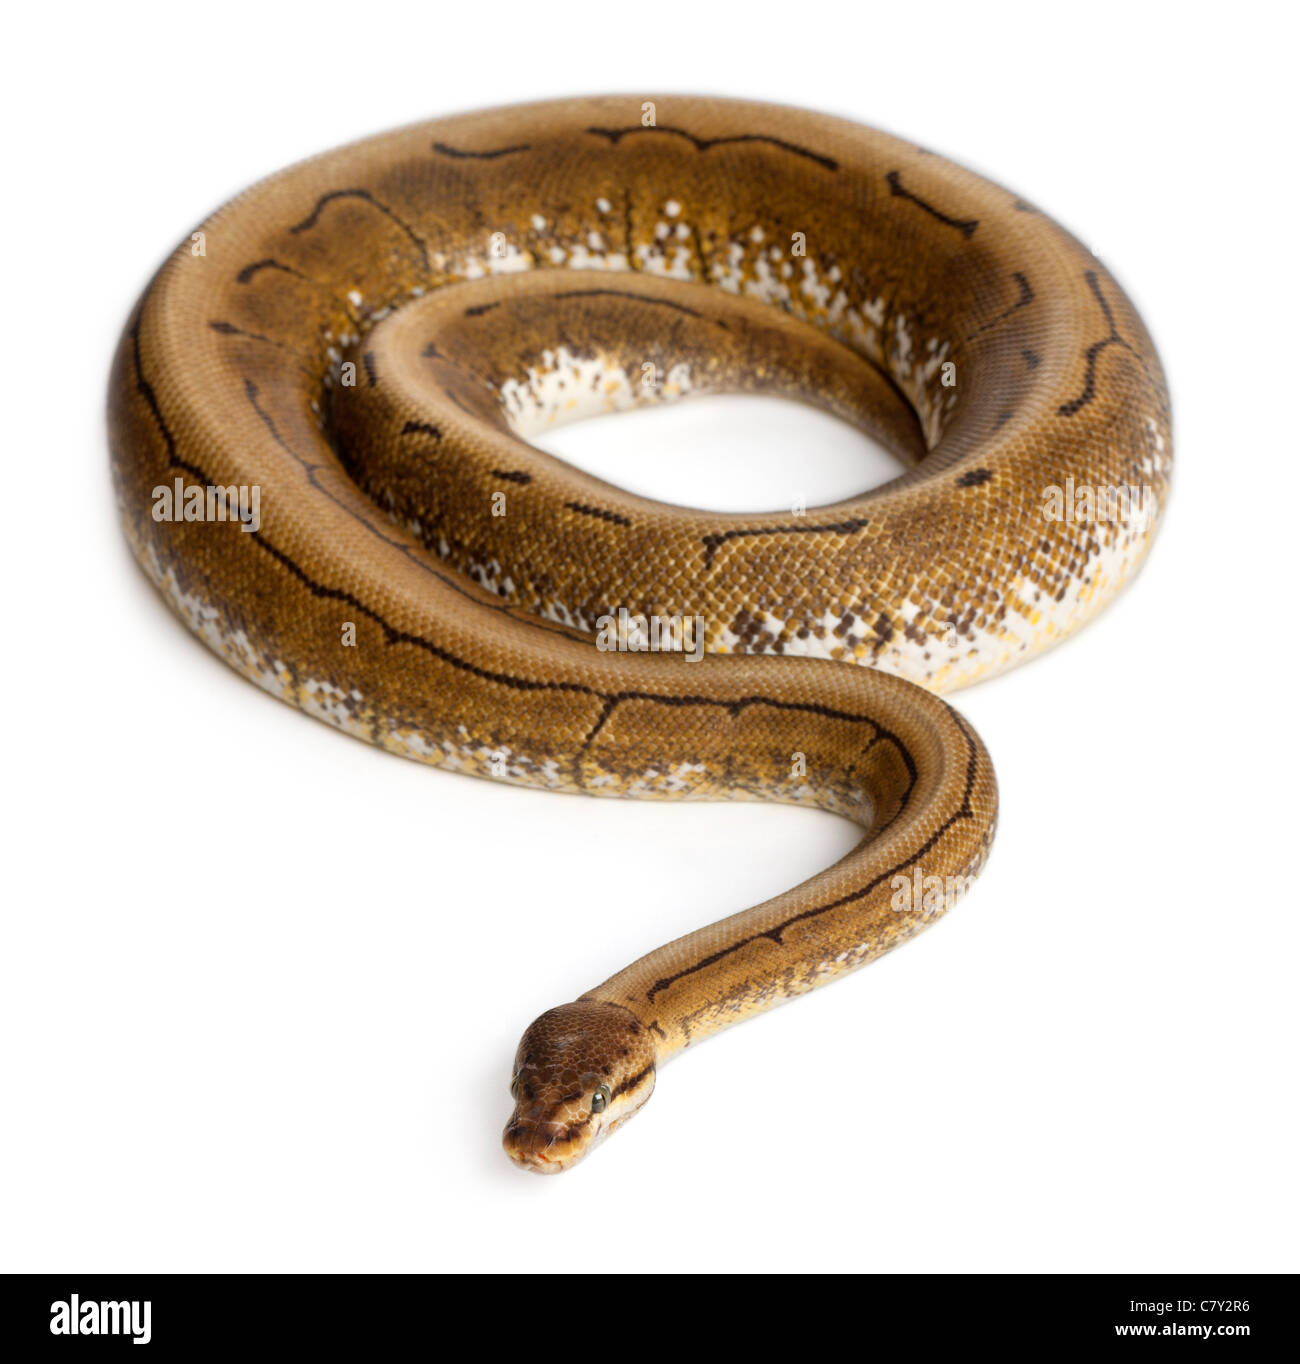 Spinner Royal python, ball python, Python regius, 2 years old, in front of white background - Stock Image